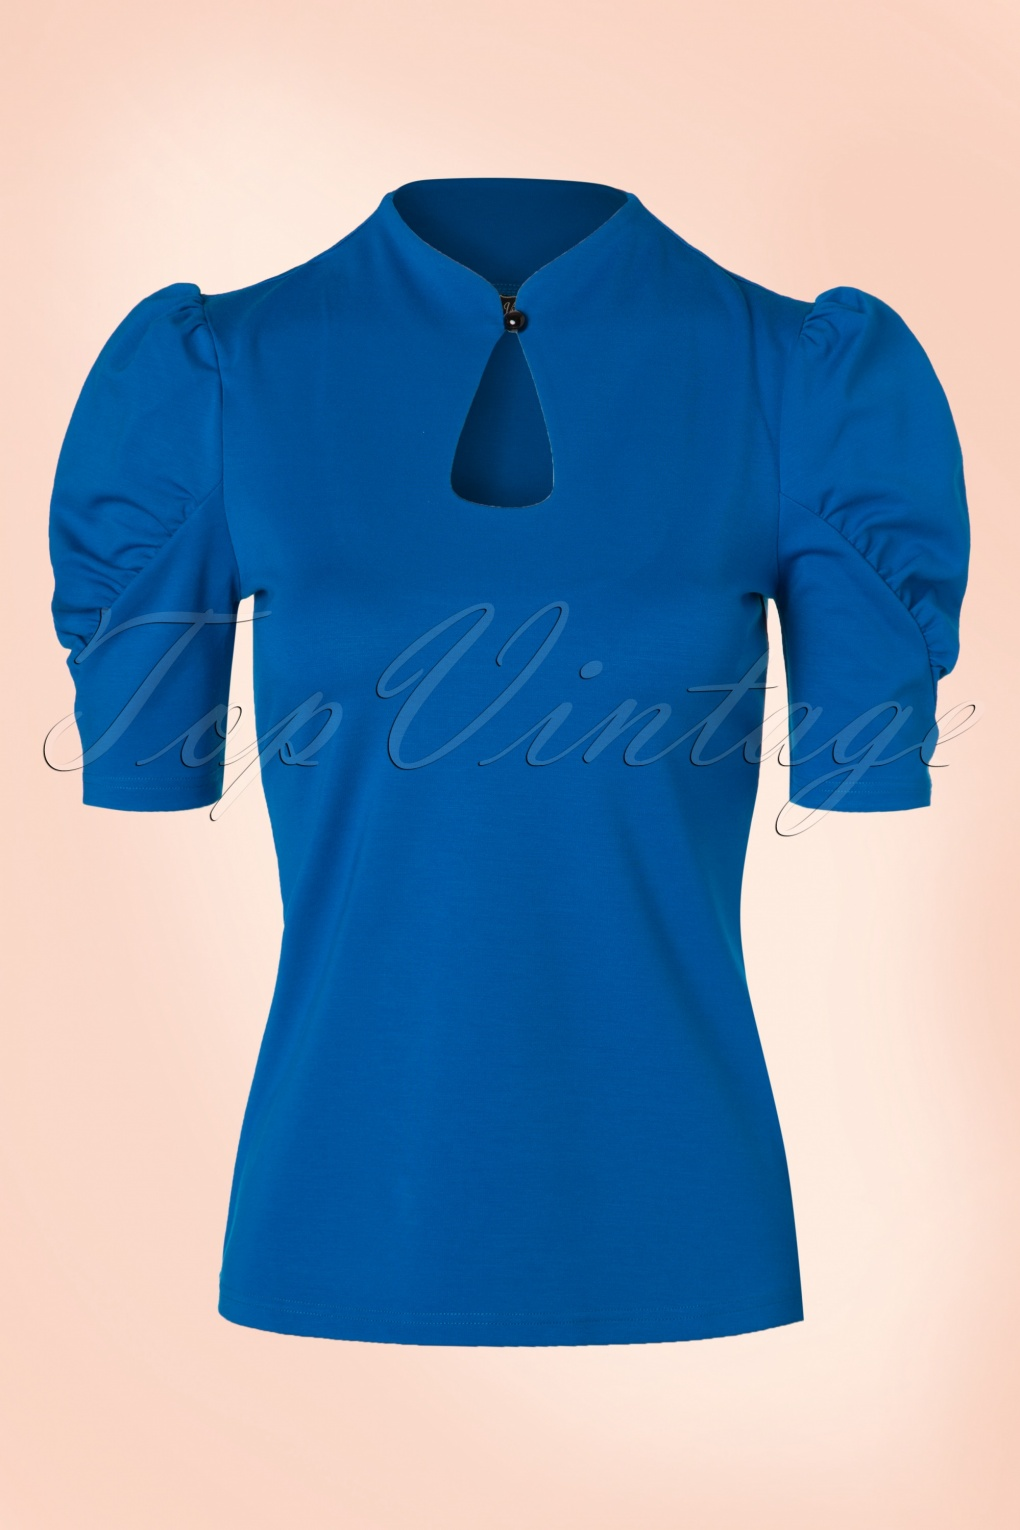 1950s Rockabilly & Pinup Tops, Shirts, Blouses 50s Dita Keyhole Top in Royal Blue £27.03 AT vintagedancer.com